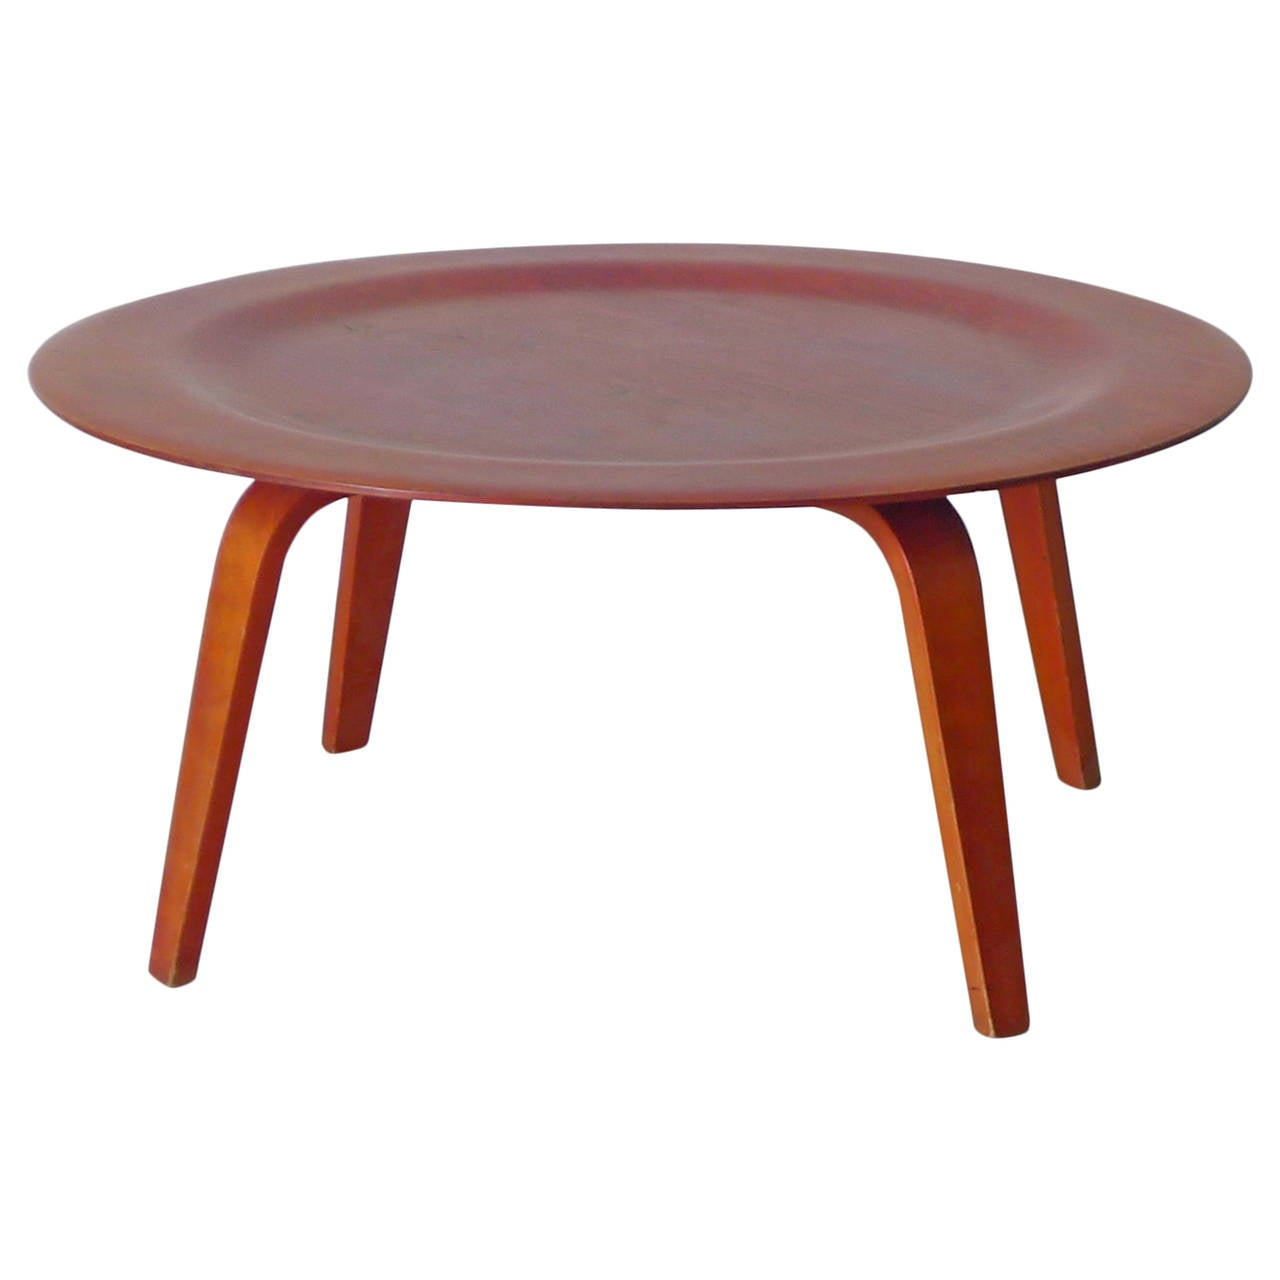 Charles and ray eames ctw at 1stdibs for Eames style coffee table